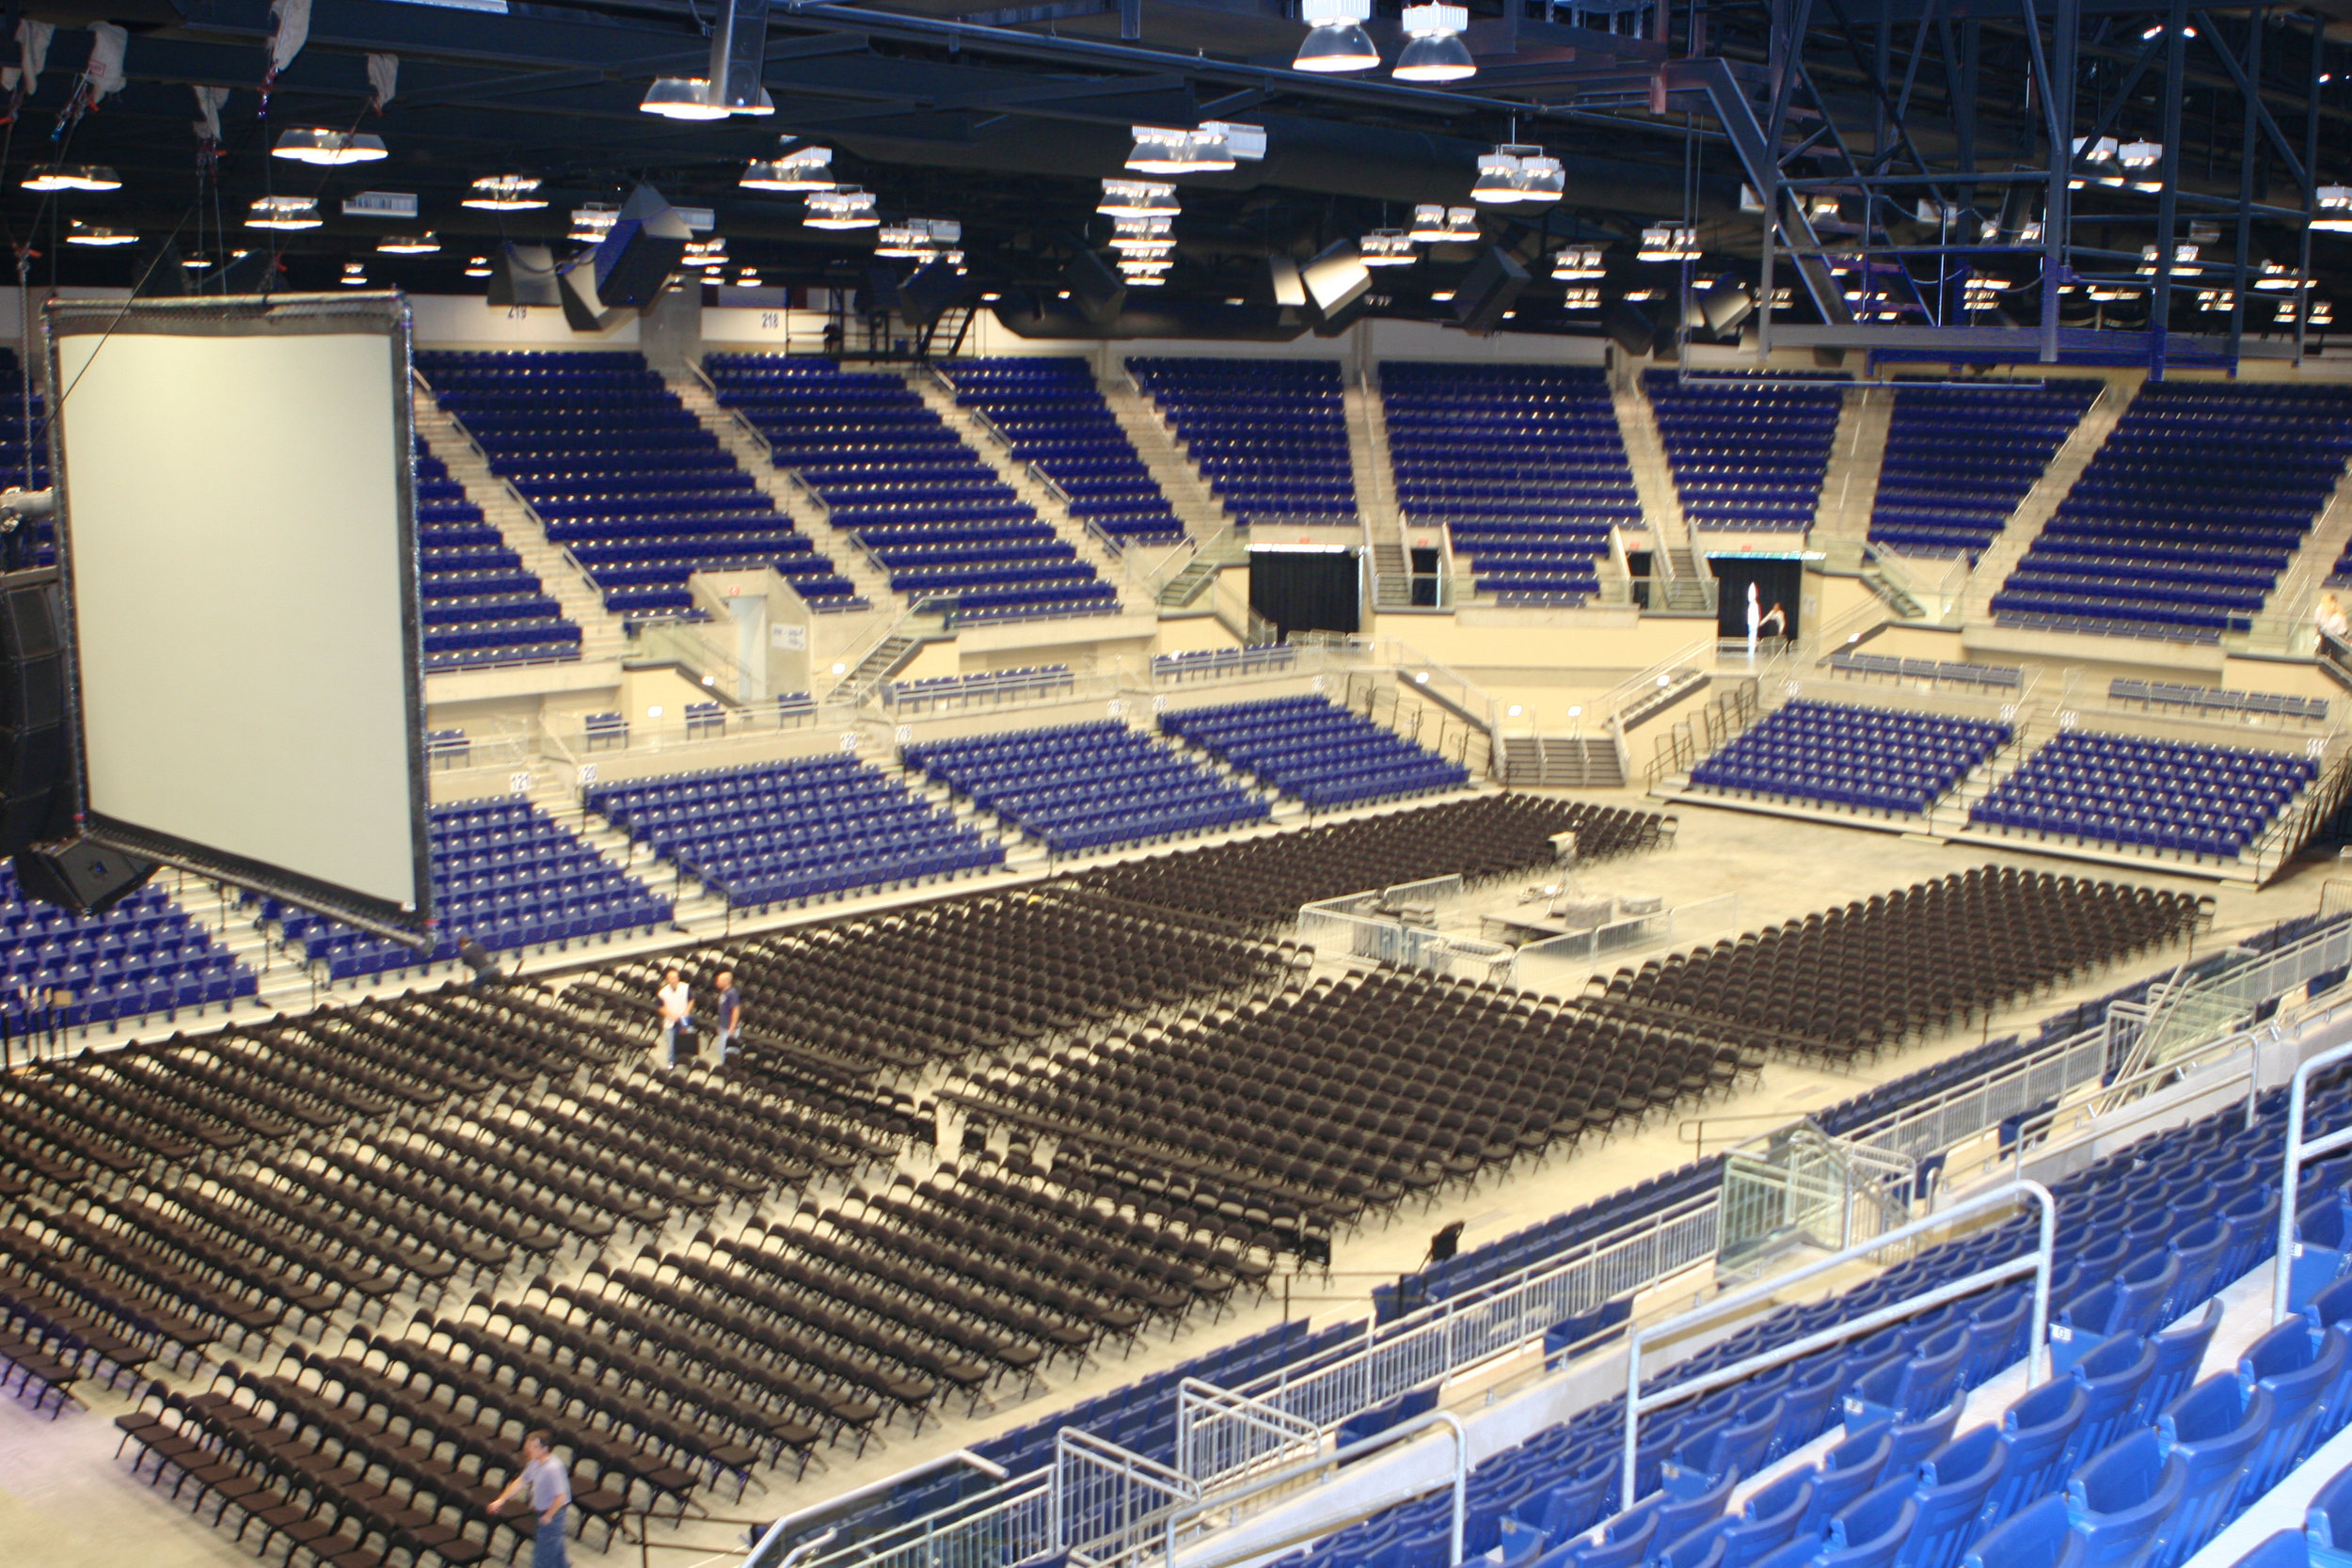 Eastern KY Expo Center (Pike Co. Civic Ctr)Seating copy.jpg